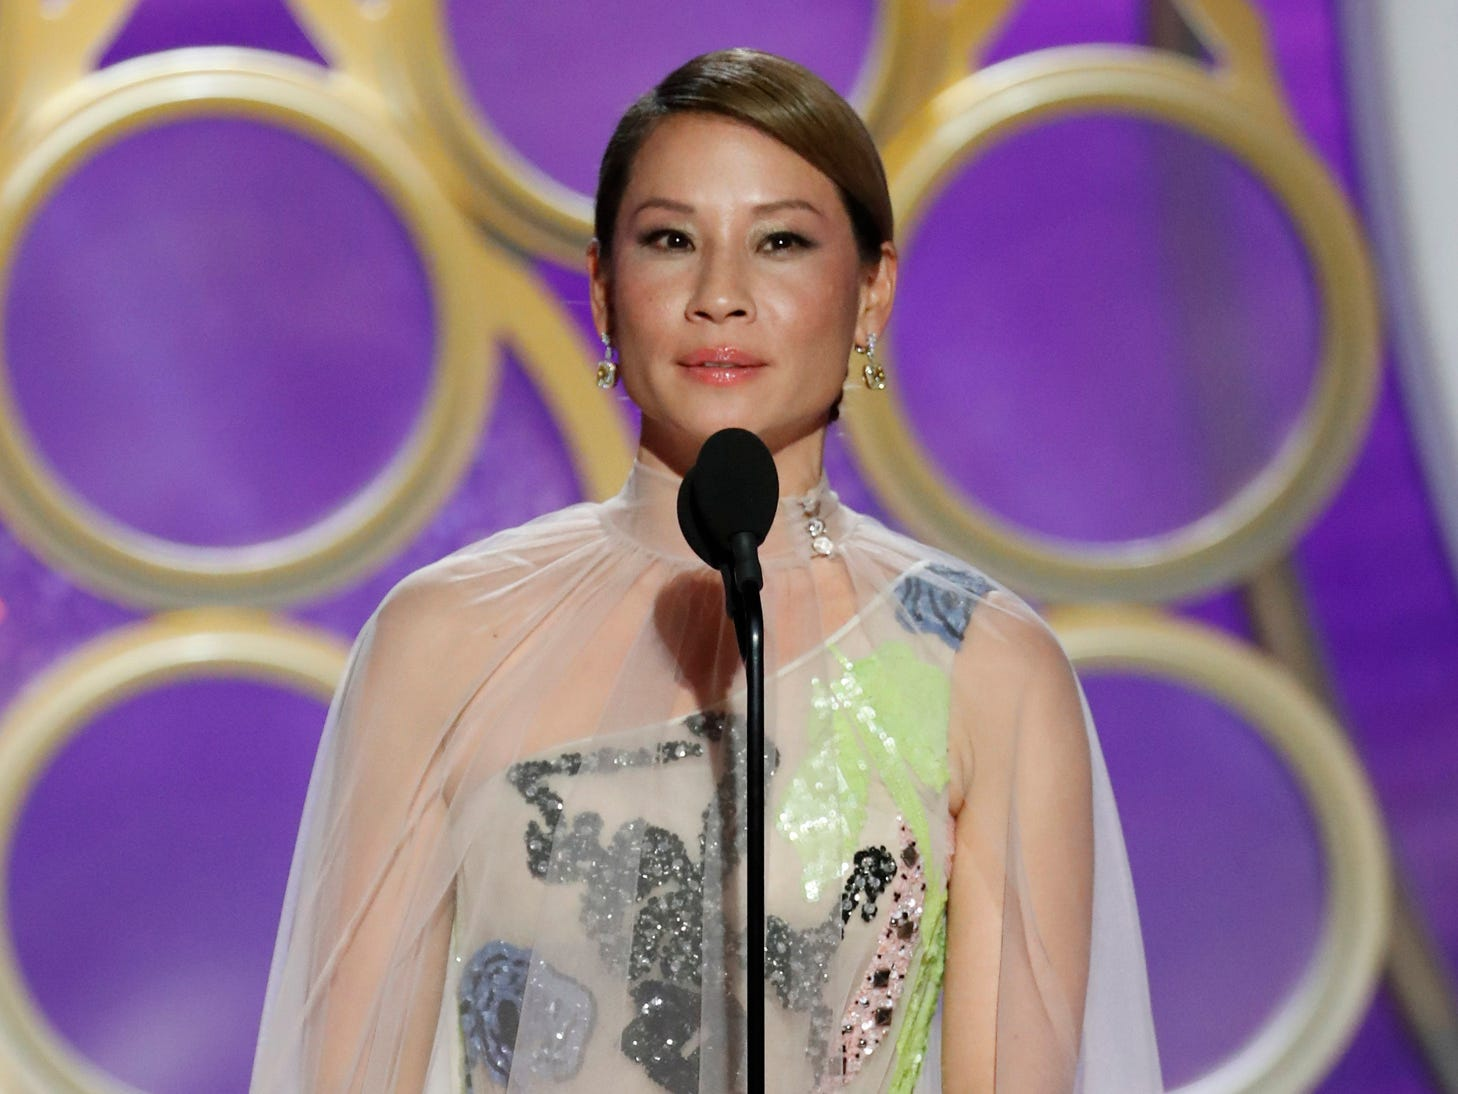 Lucy Liu speaks on stage during the 76th Golden Globe Awards.